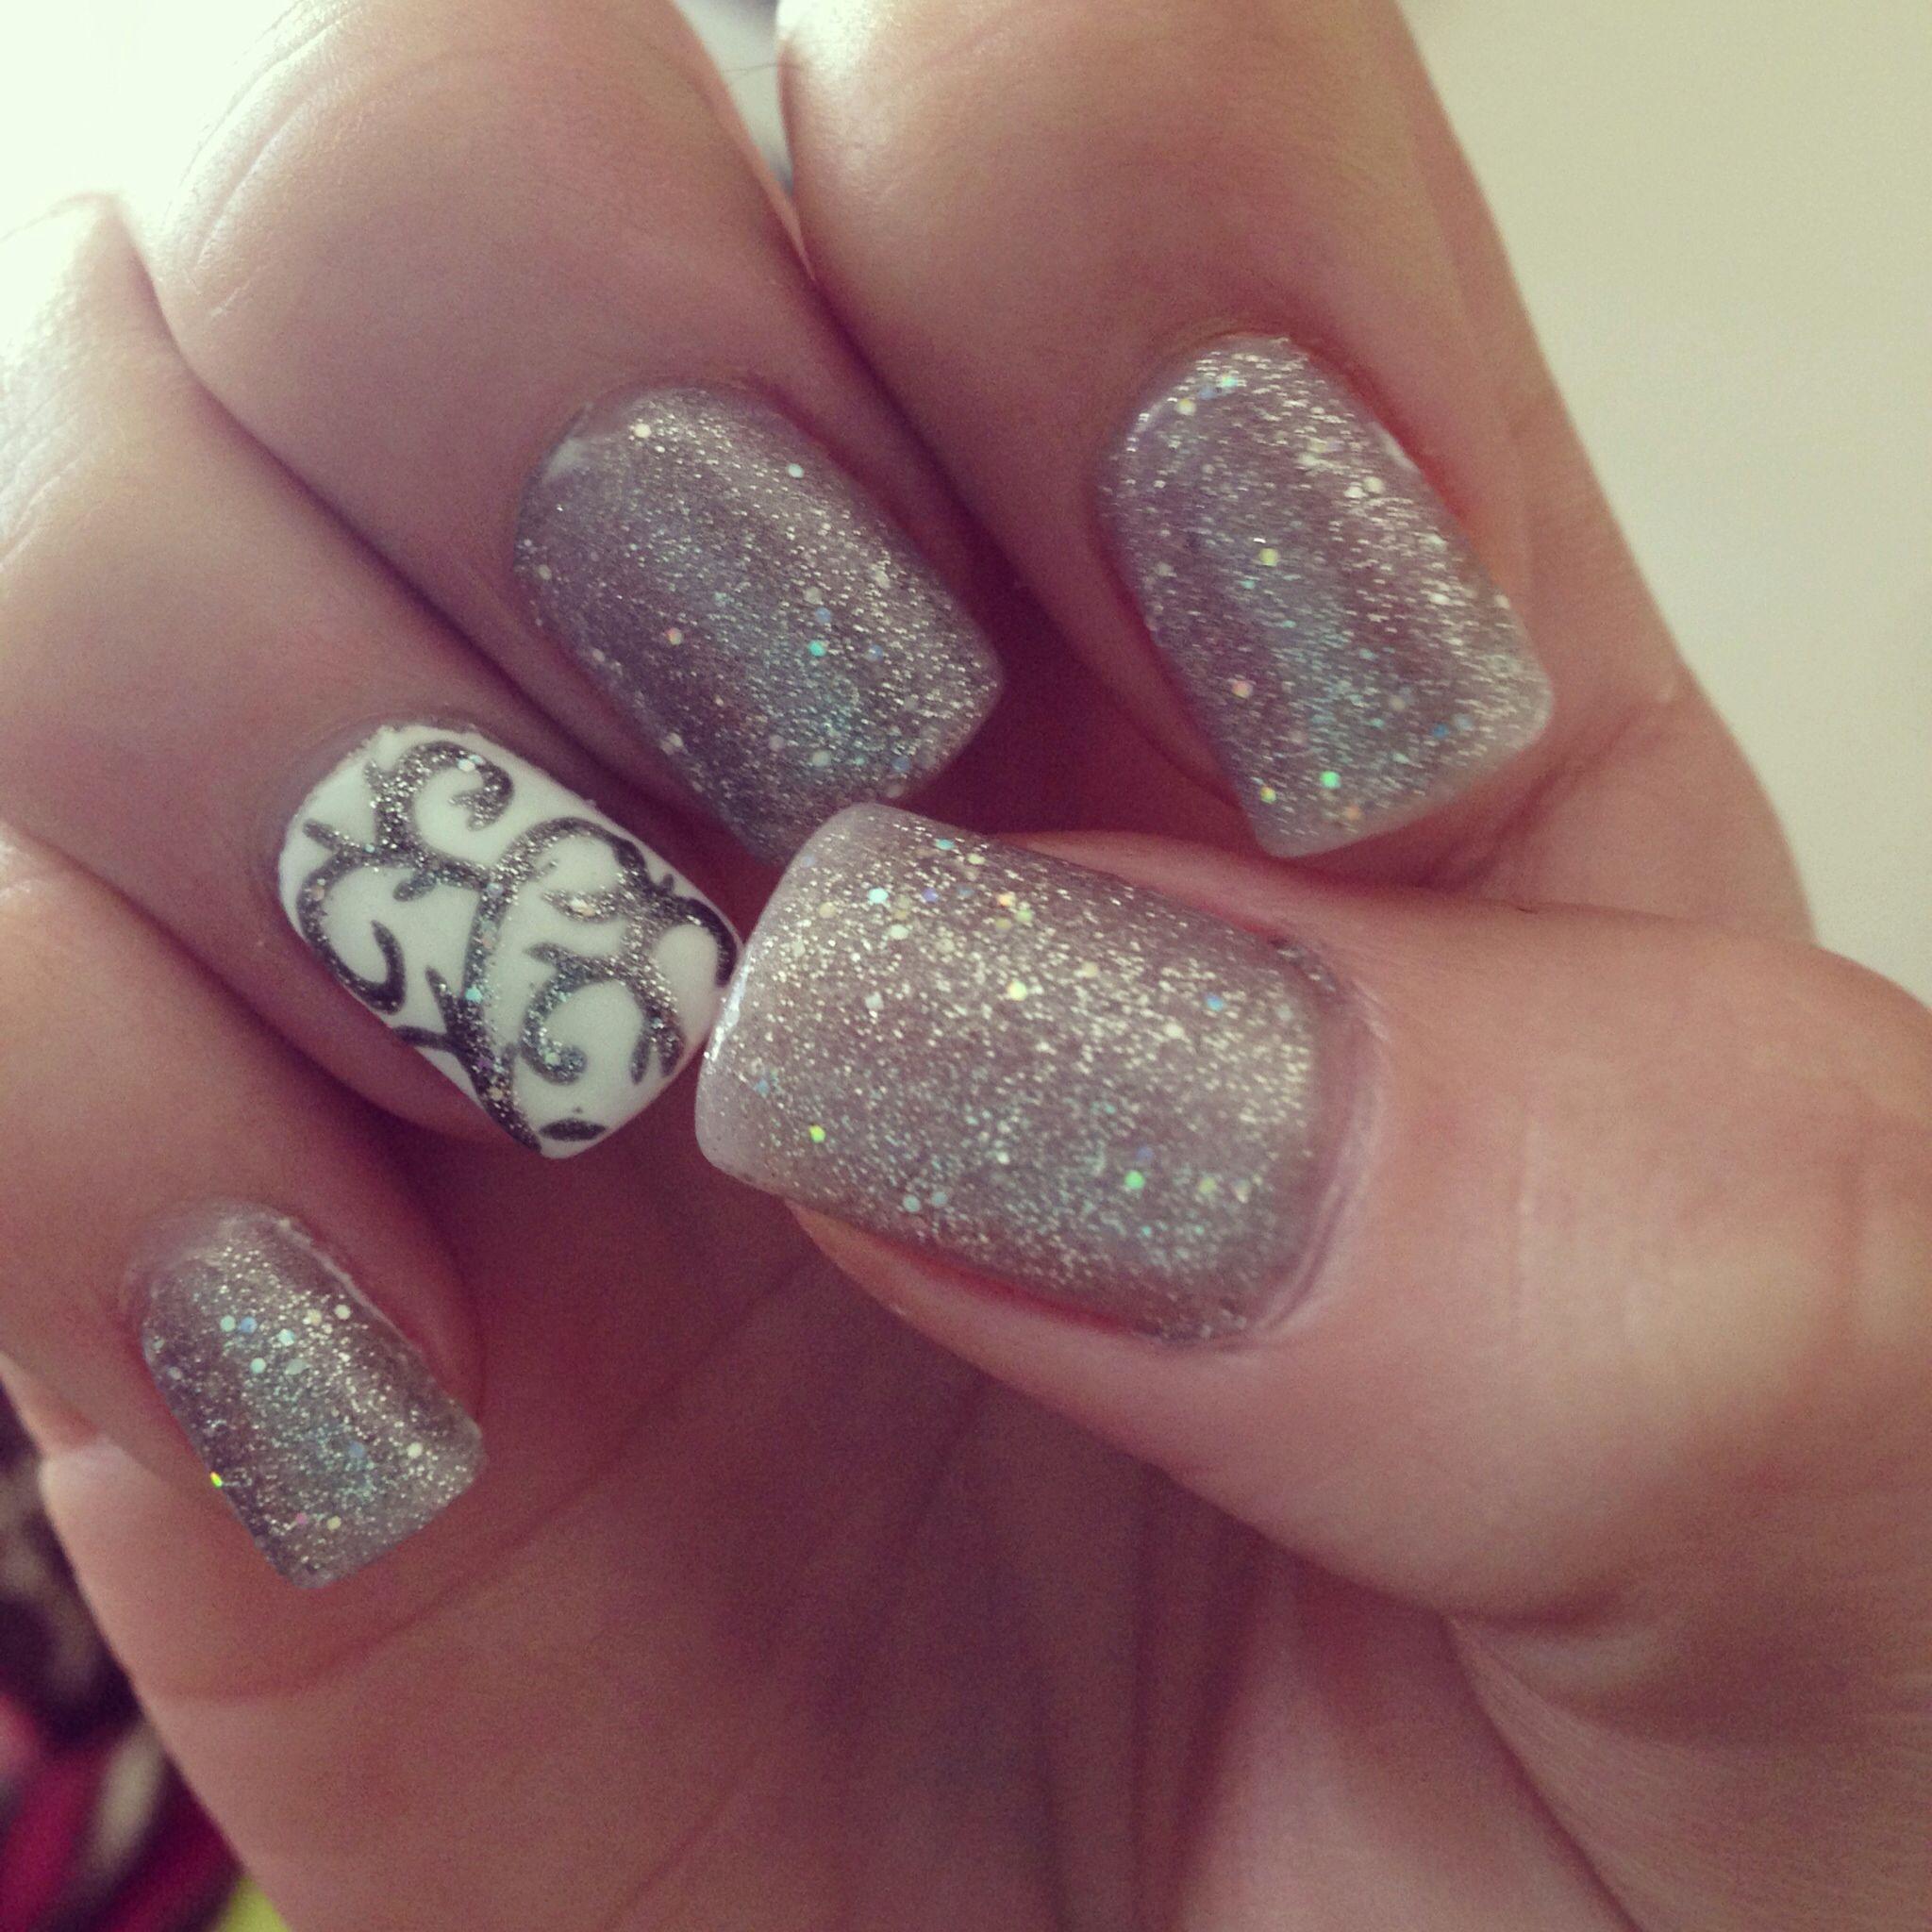 Glitter nails see more nail designs at ilsss